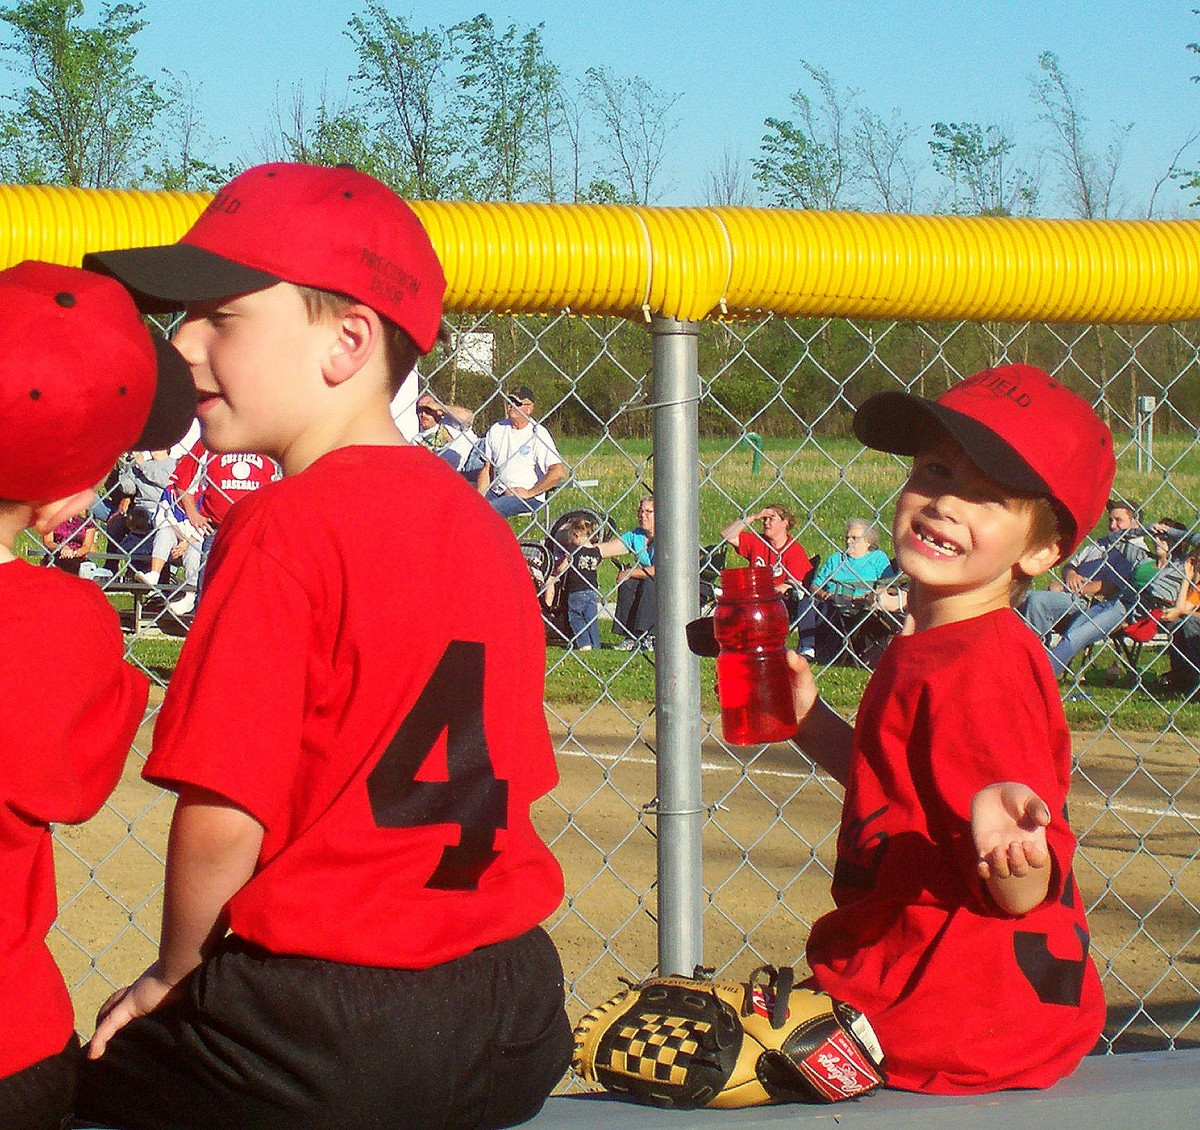 Little League Baseball | Basic Pitching Mechanics and Rules